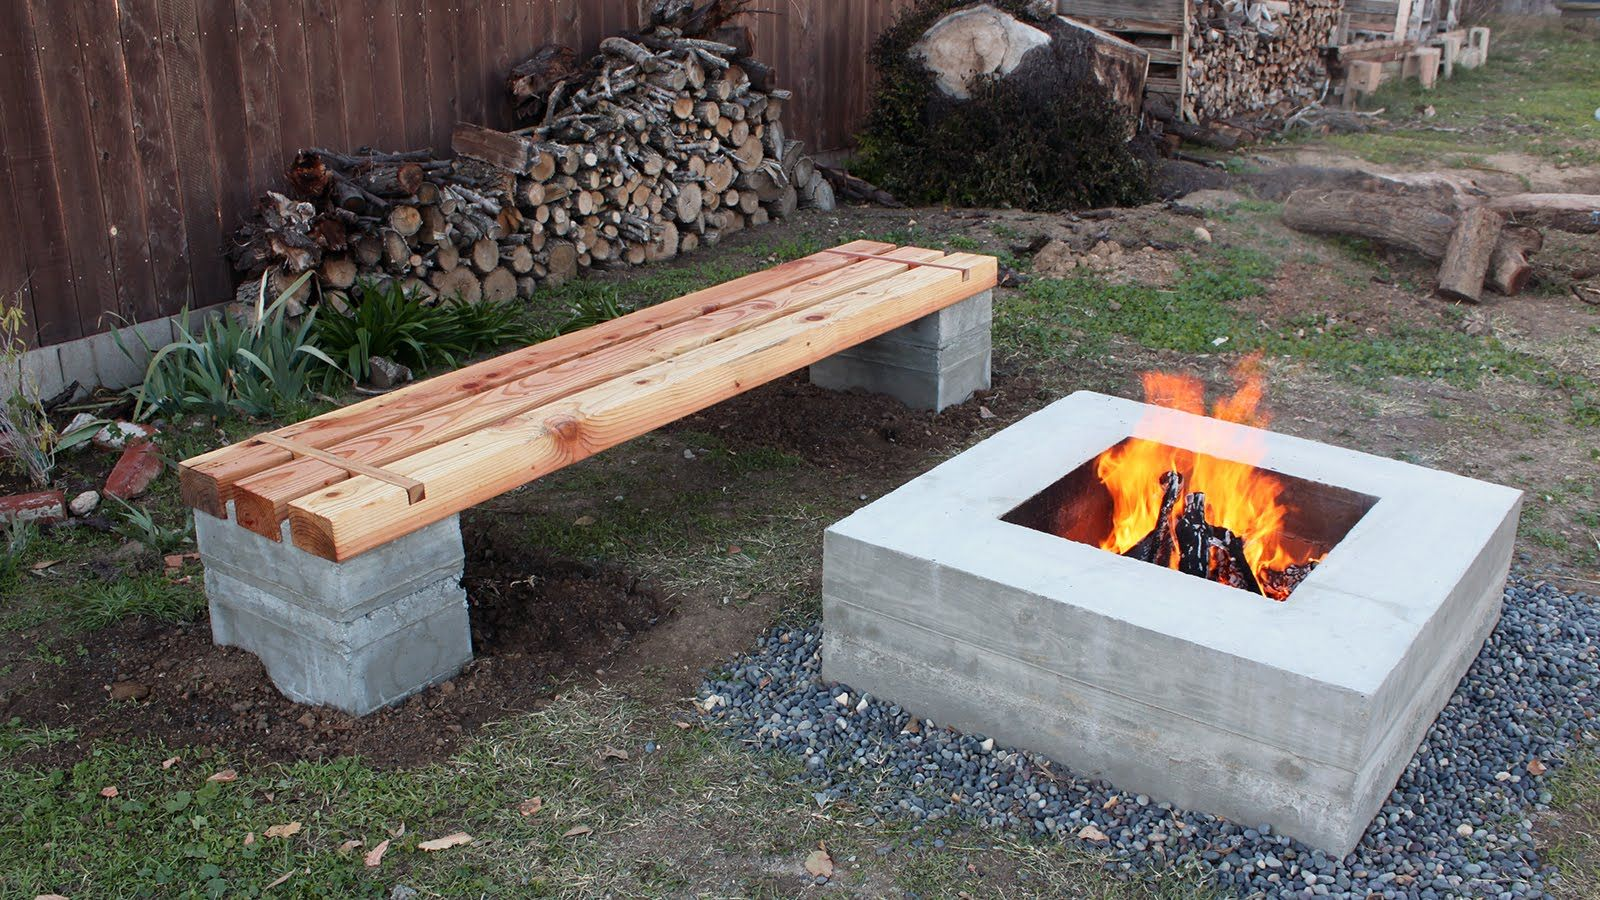 How to make outdoor concrete and wood bench - YouTube